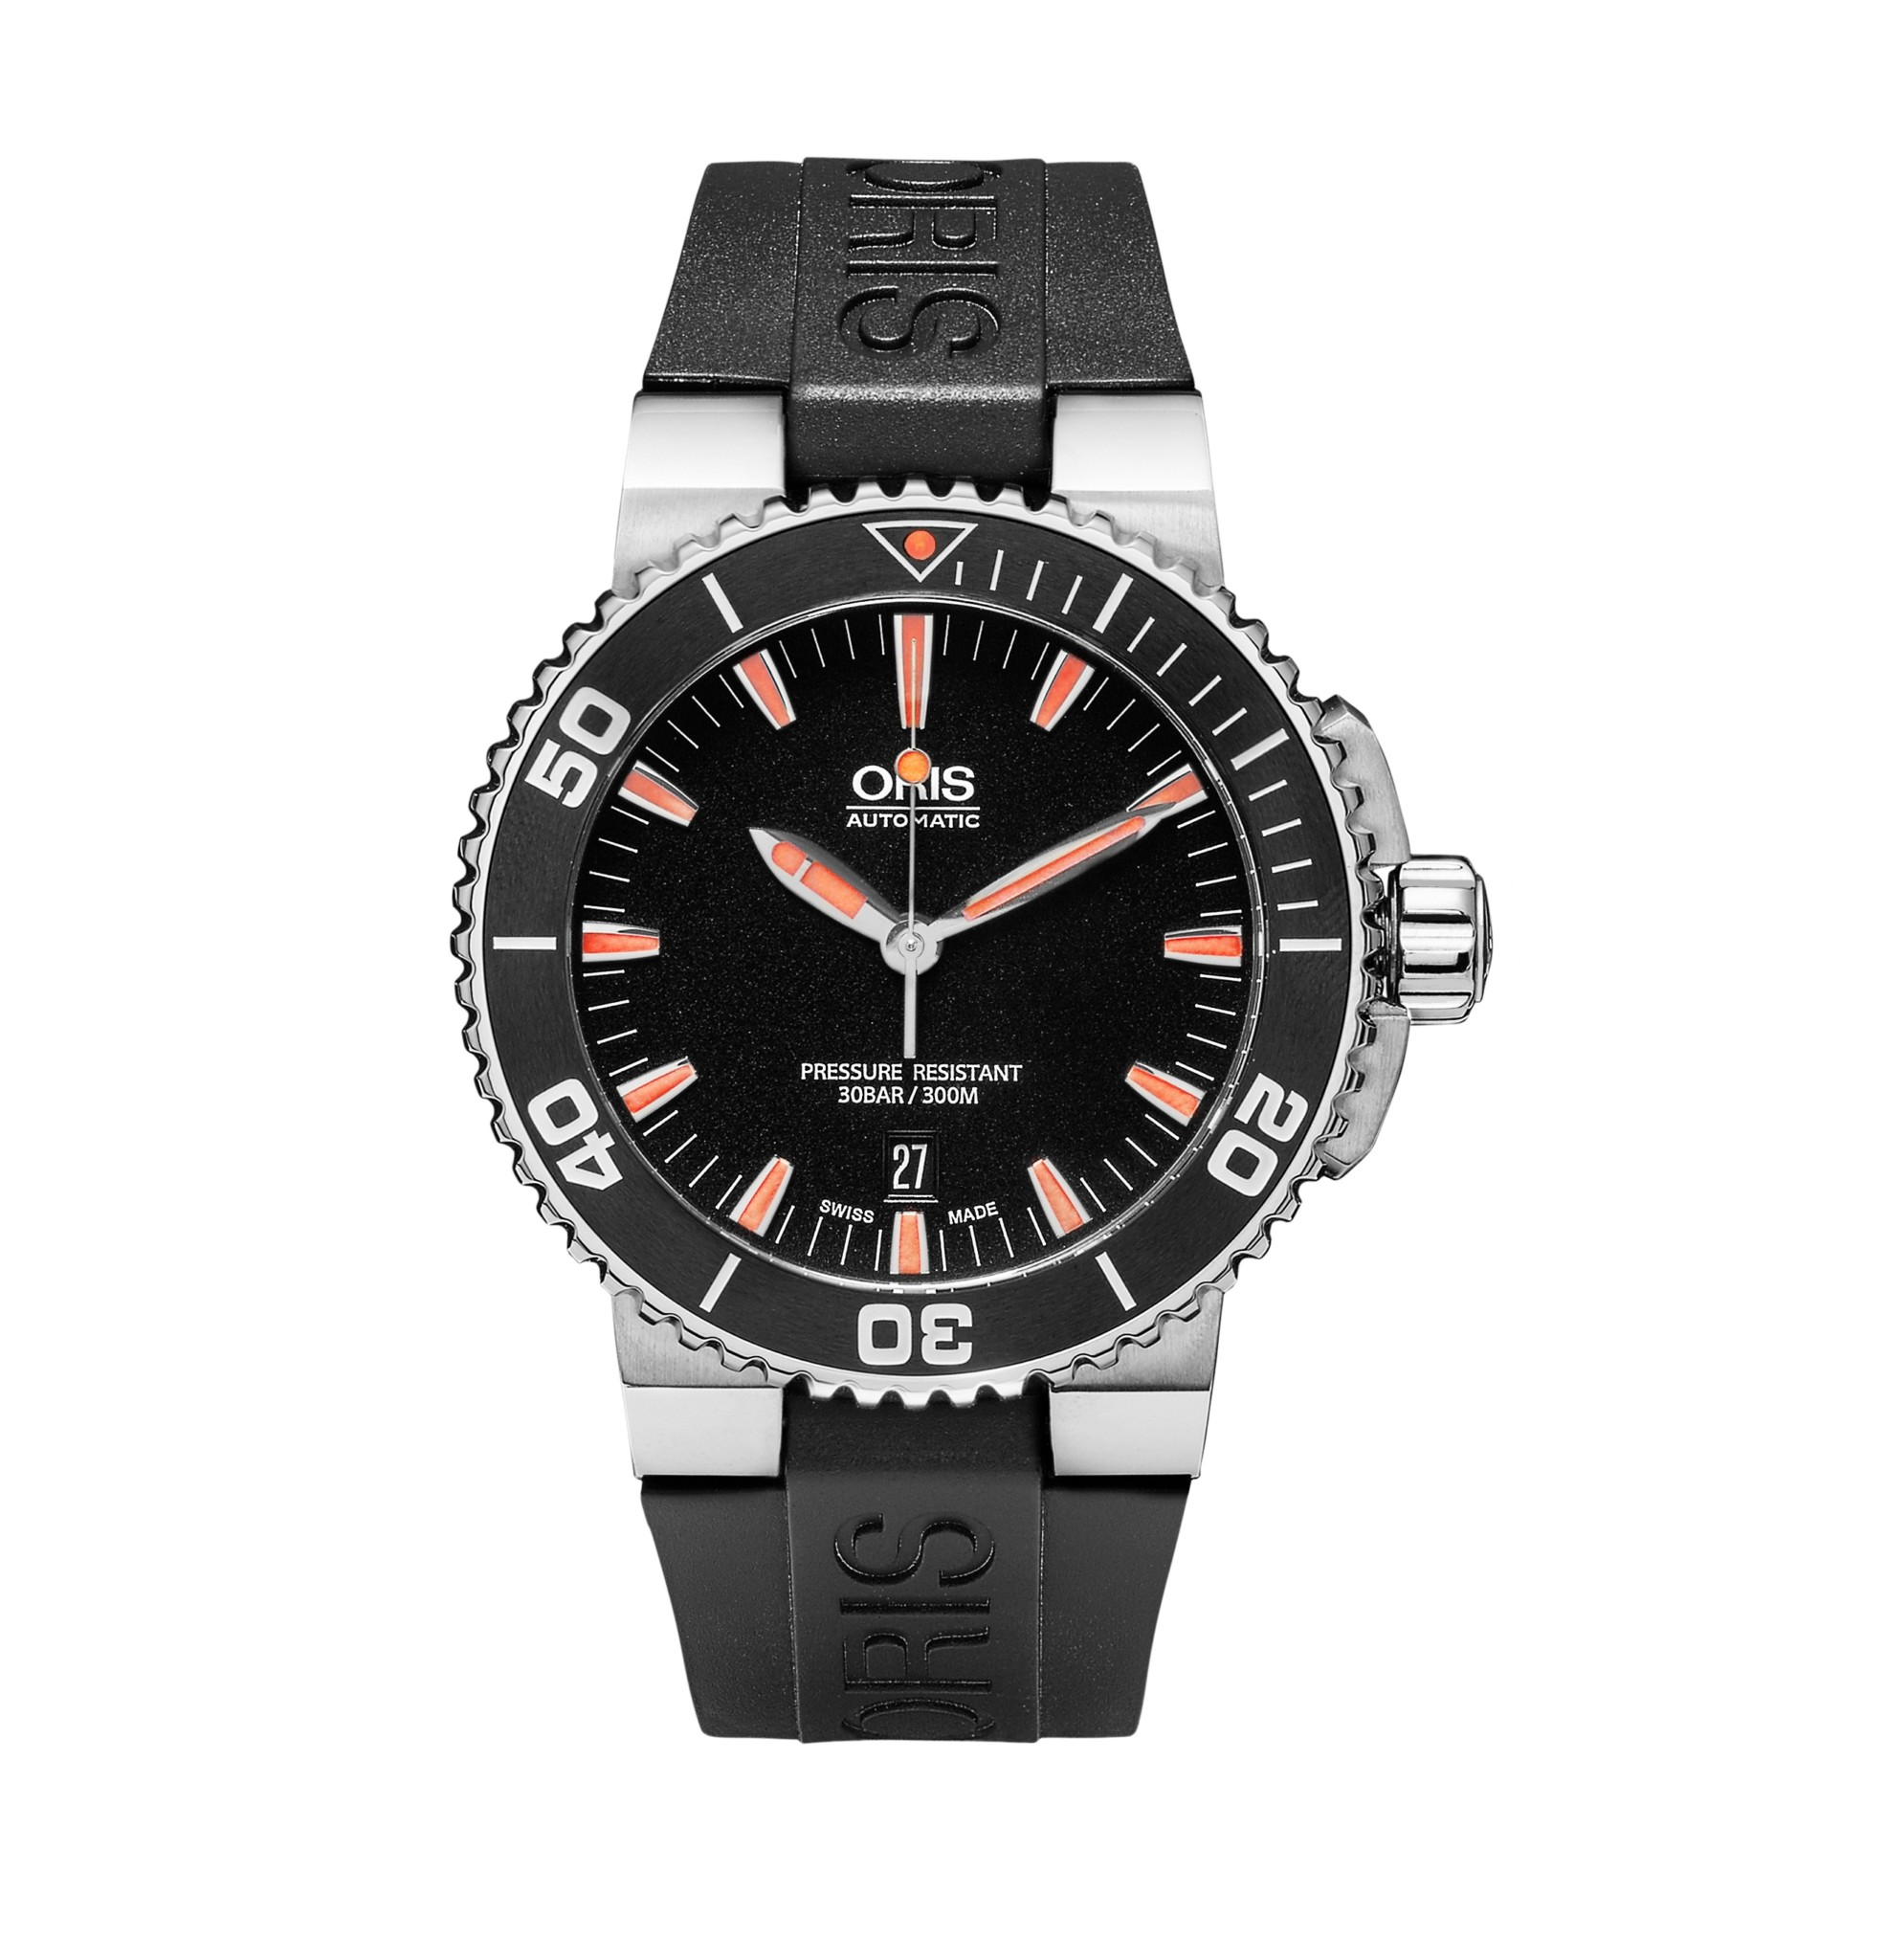 Le Meilleur Mr Porter Adds Oris Selection To Its Watch Offer Watchpro Ce Mois Ci